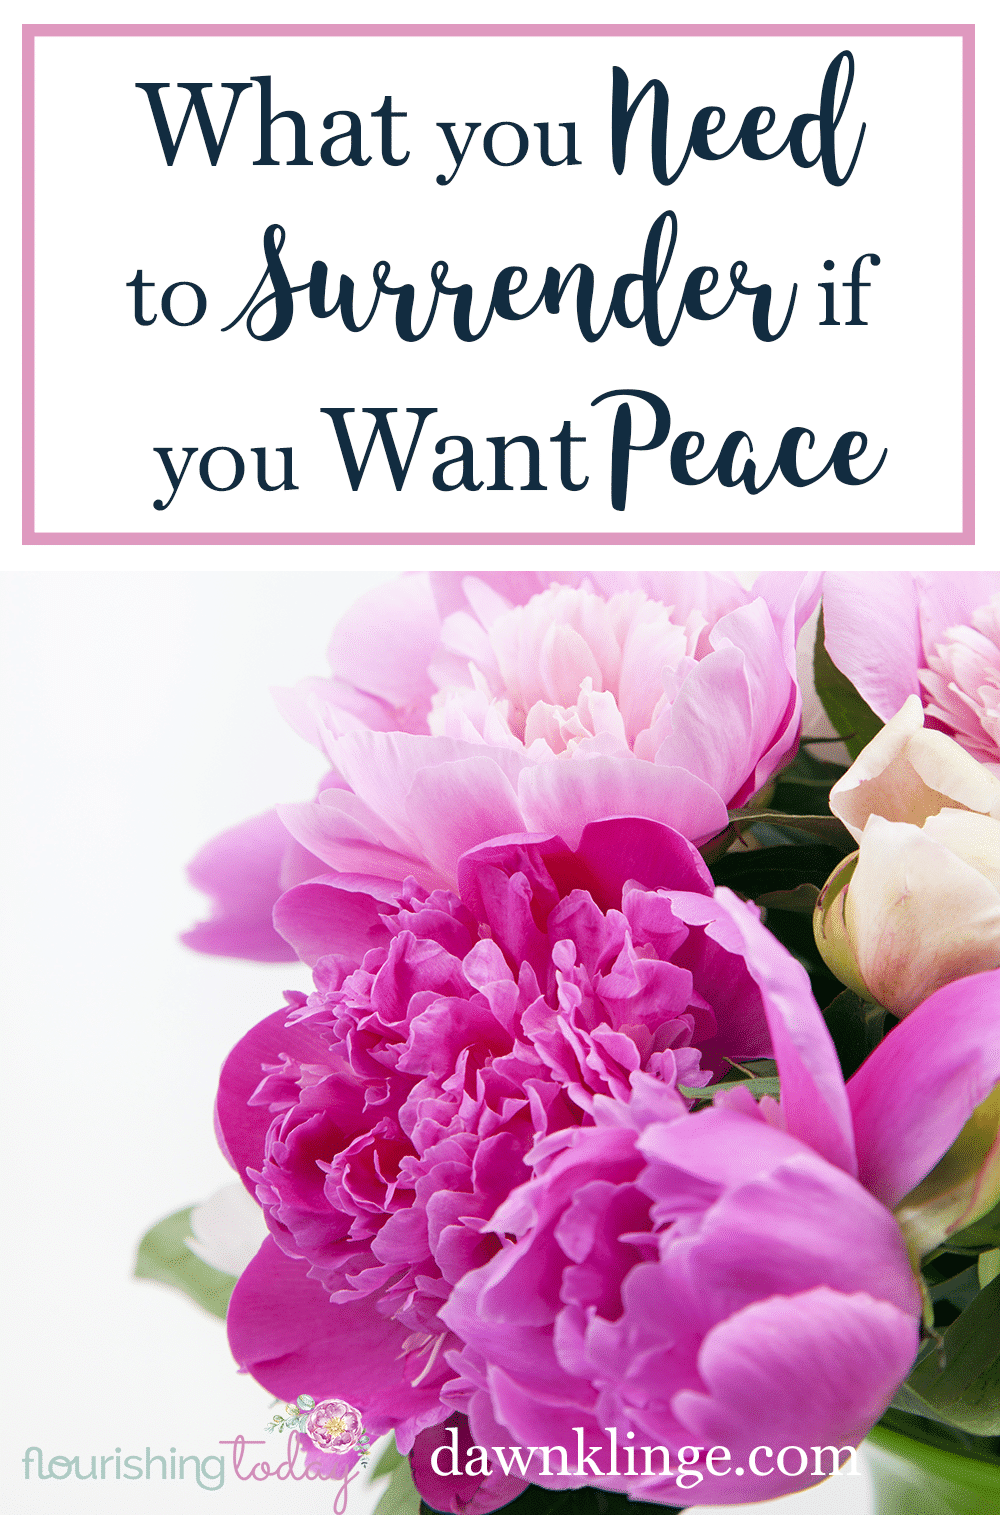 Do you find it hard to to surrender to god completely? We all have things that we can hold onto. But perfect peace comes with complete surrender.